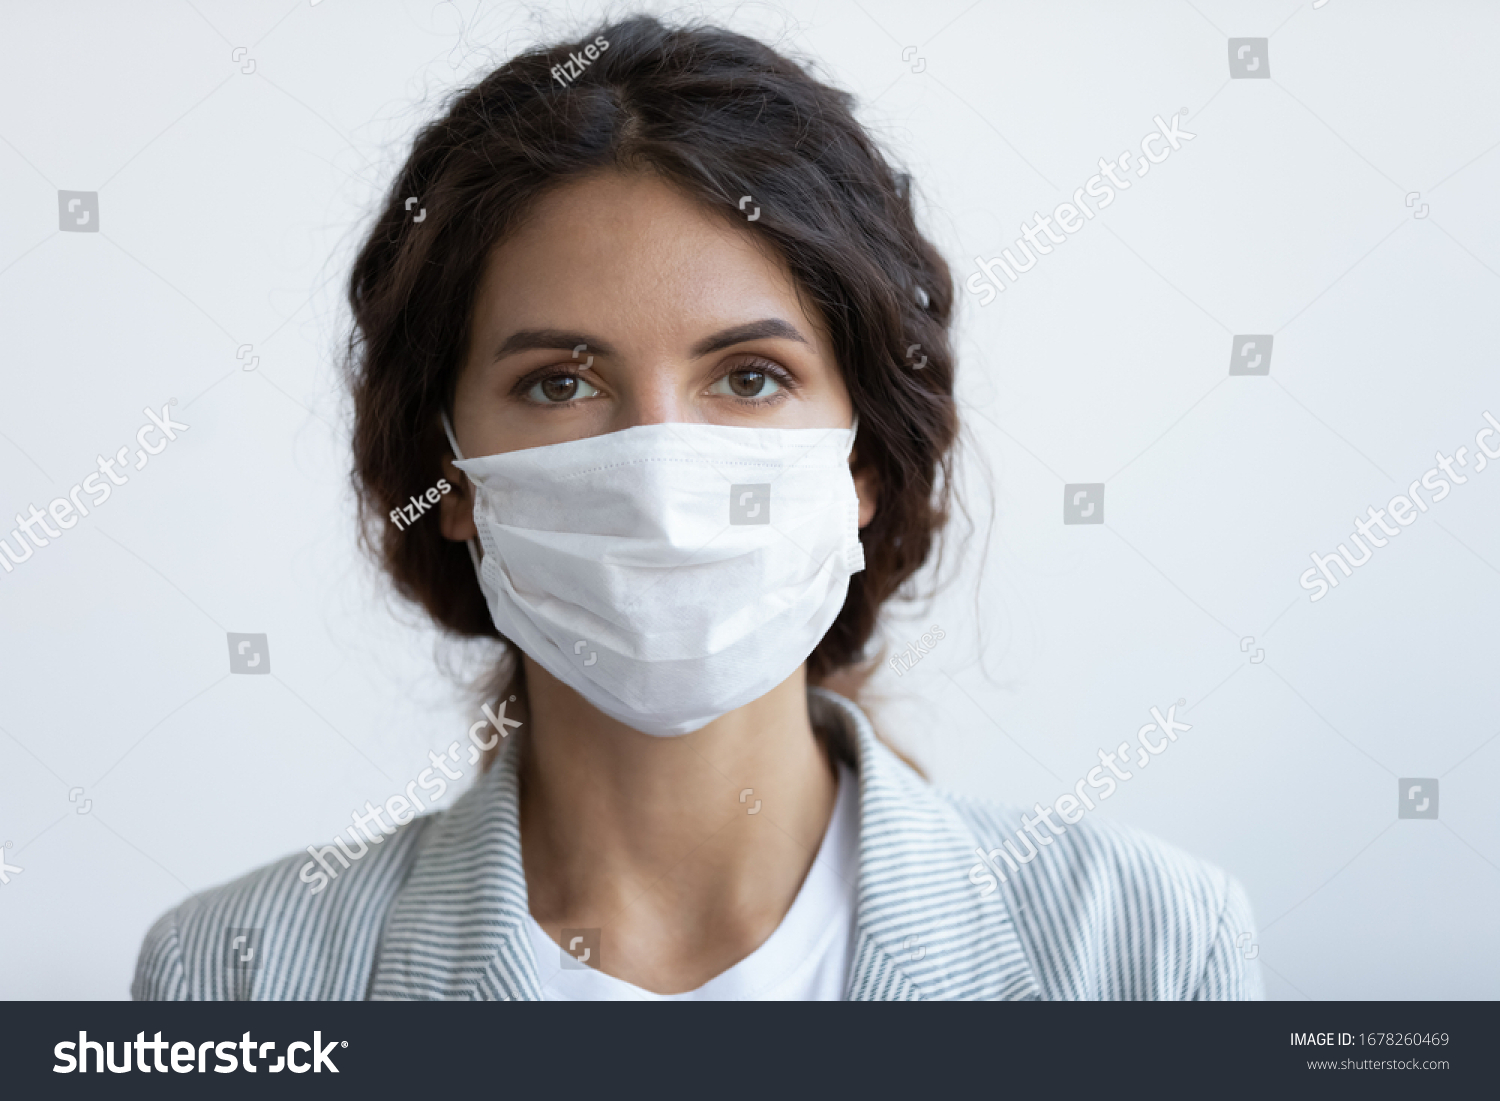 Head shot portrait attractive woman looking at camera wear medical or surgical blue colour face mask protecting from COVID19 or corona virus. Personal care during pandemic infectious disease outbreak #1678260469